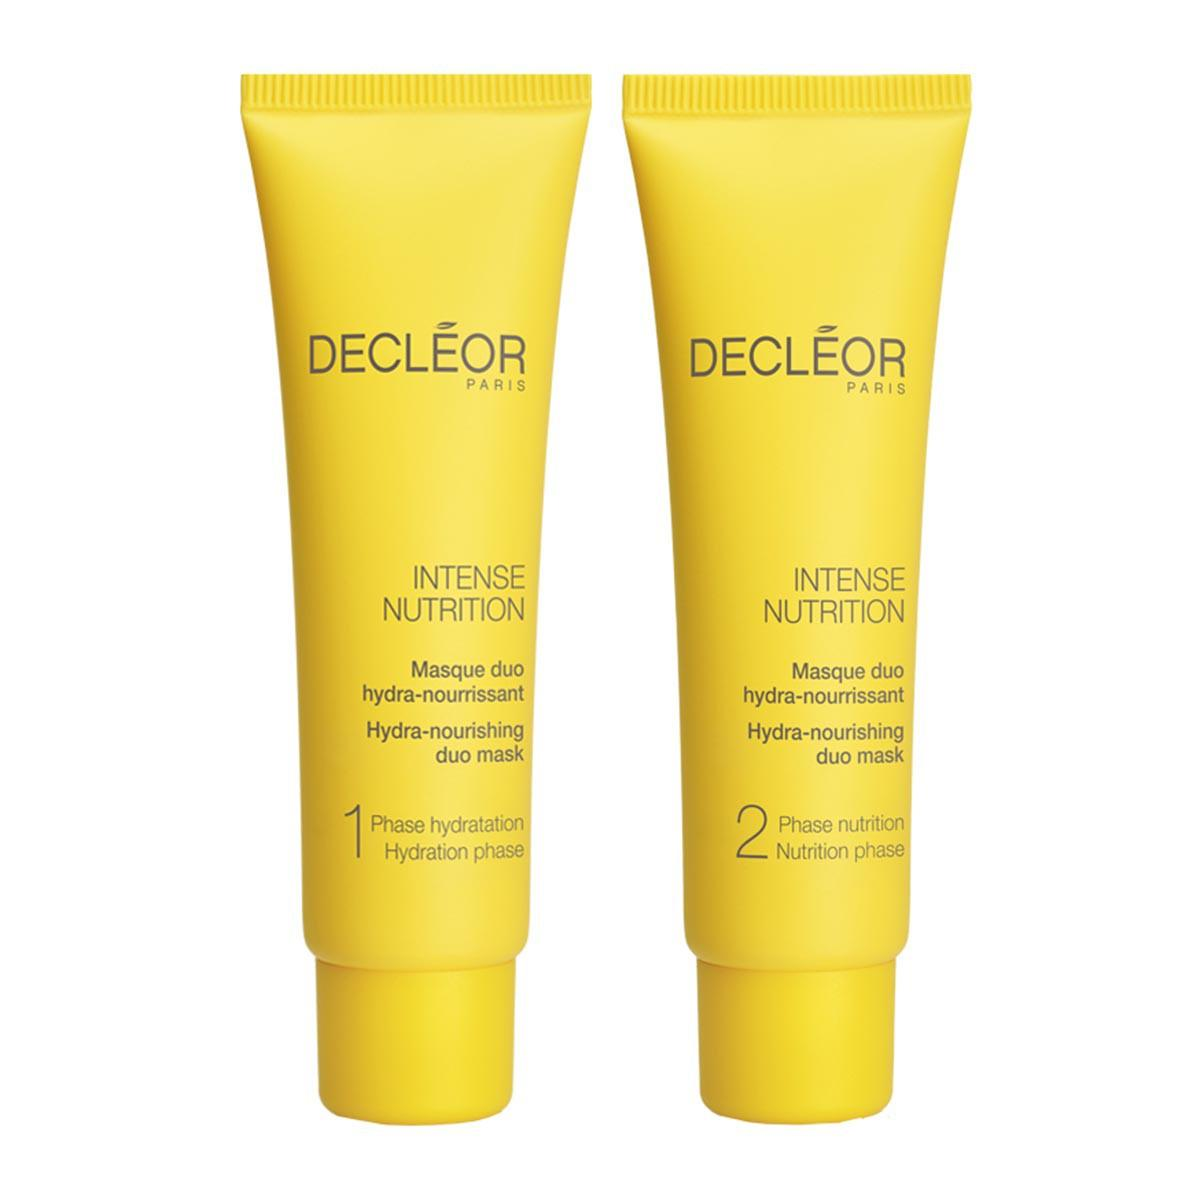 Decleor fragrances Intense Nutrition Masque Duo Hydranourrissant Peaux Normales A Tres Seches 2X25ml